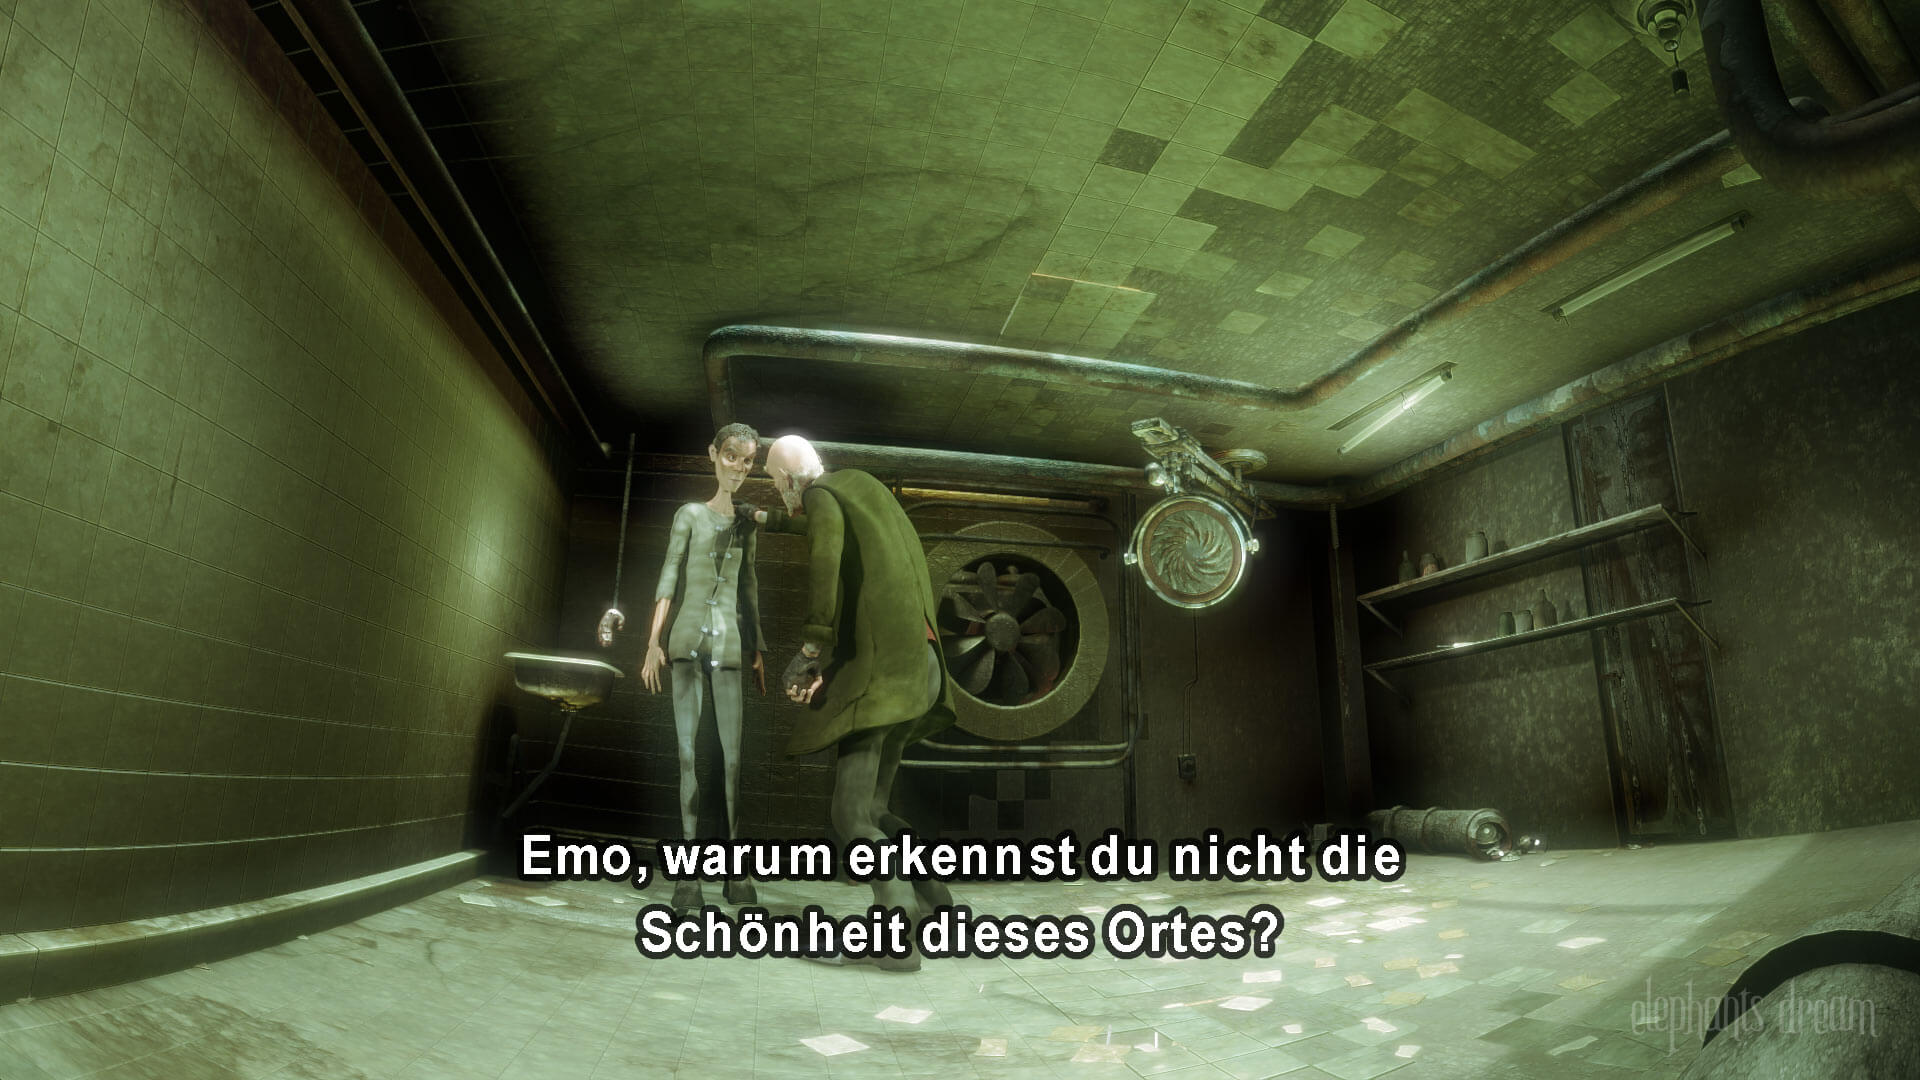 An image from the film Elephants dream with German subtitles at the bottom of the screen